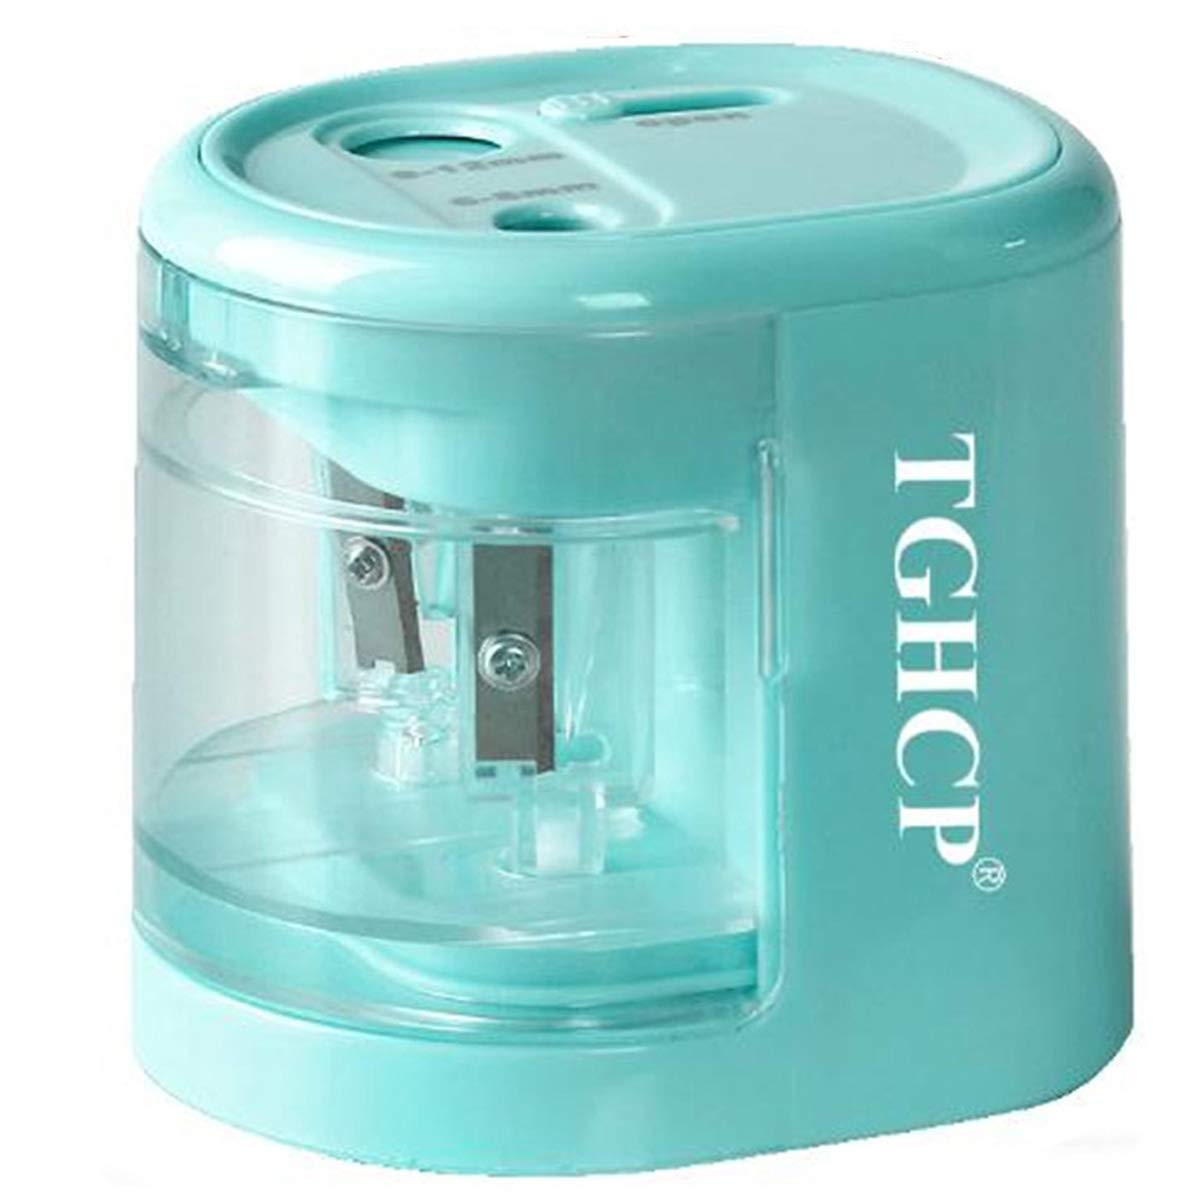 TGHCP Double Hole Electric Pencil Sharpener, Fast Sharpen Automatic Pencil Sharpener for 6-8MM & 9-12MM Diameter Pencils, USB/Battery Operated in School Classroom/Office/Home(Blue)